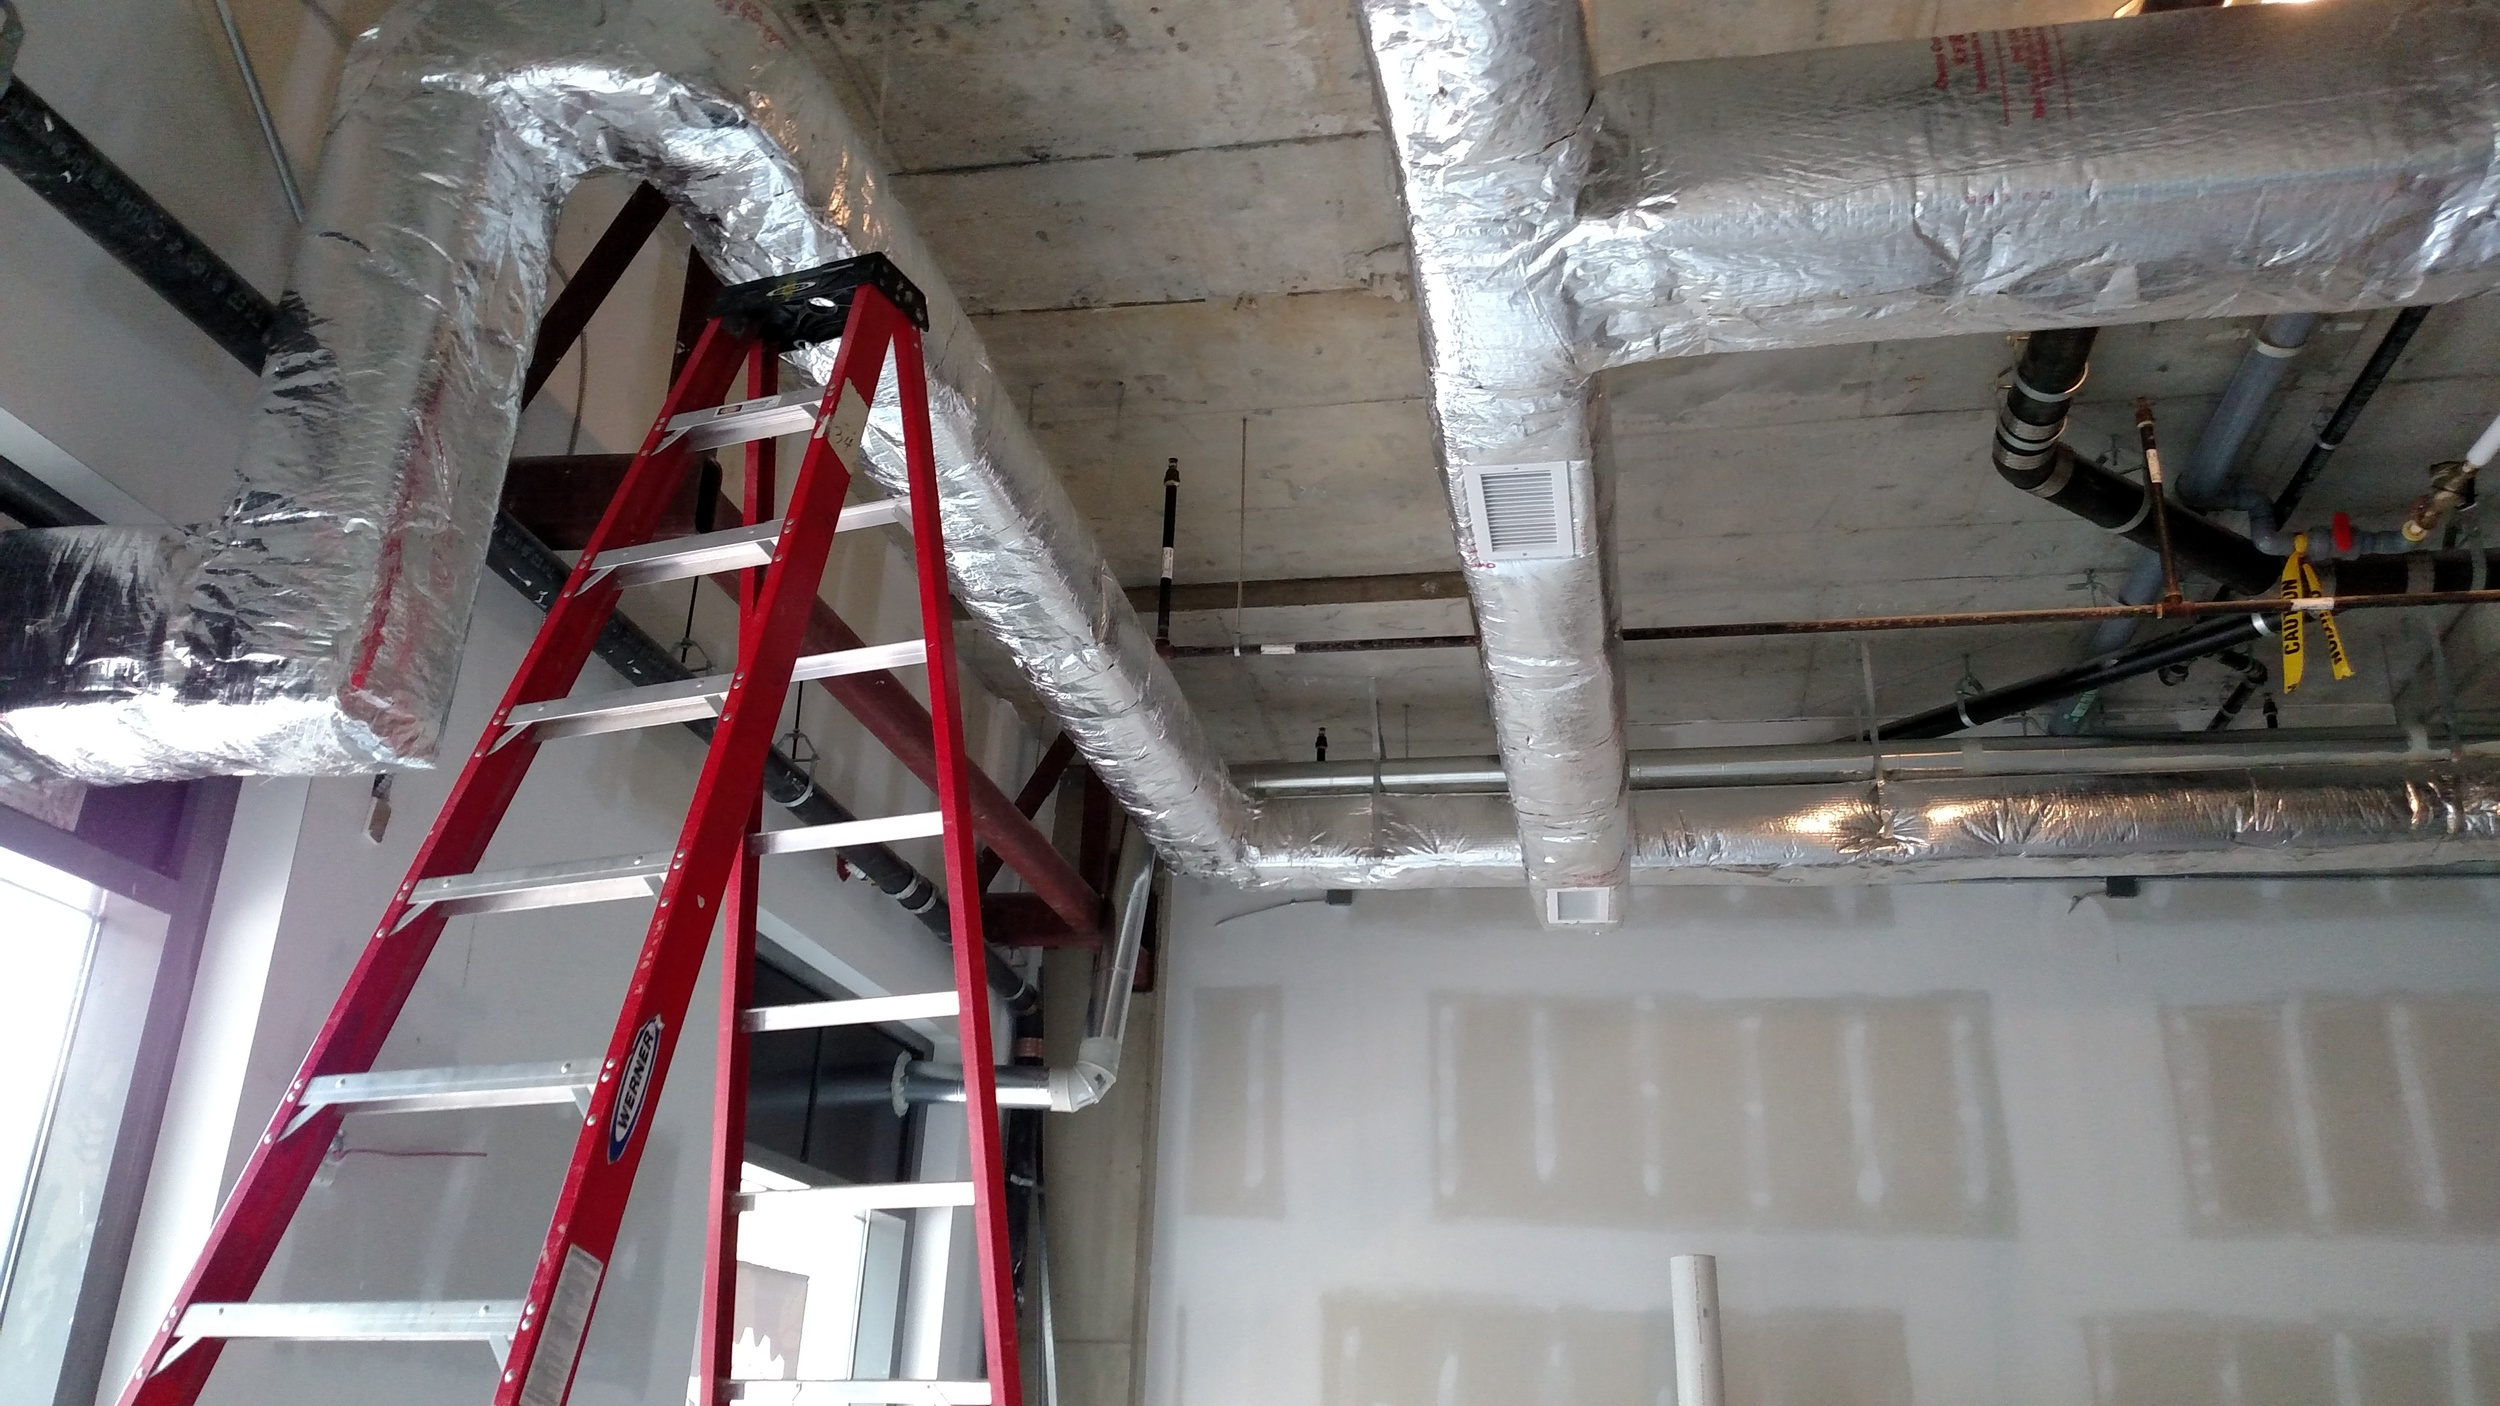 HVAC duct work wrapped and insulated